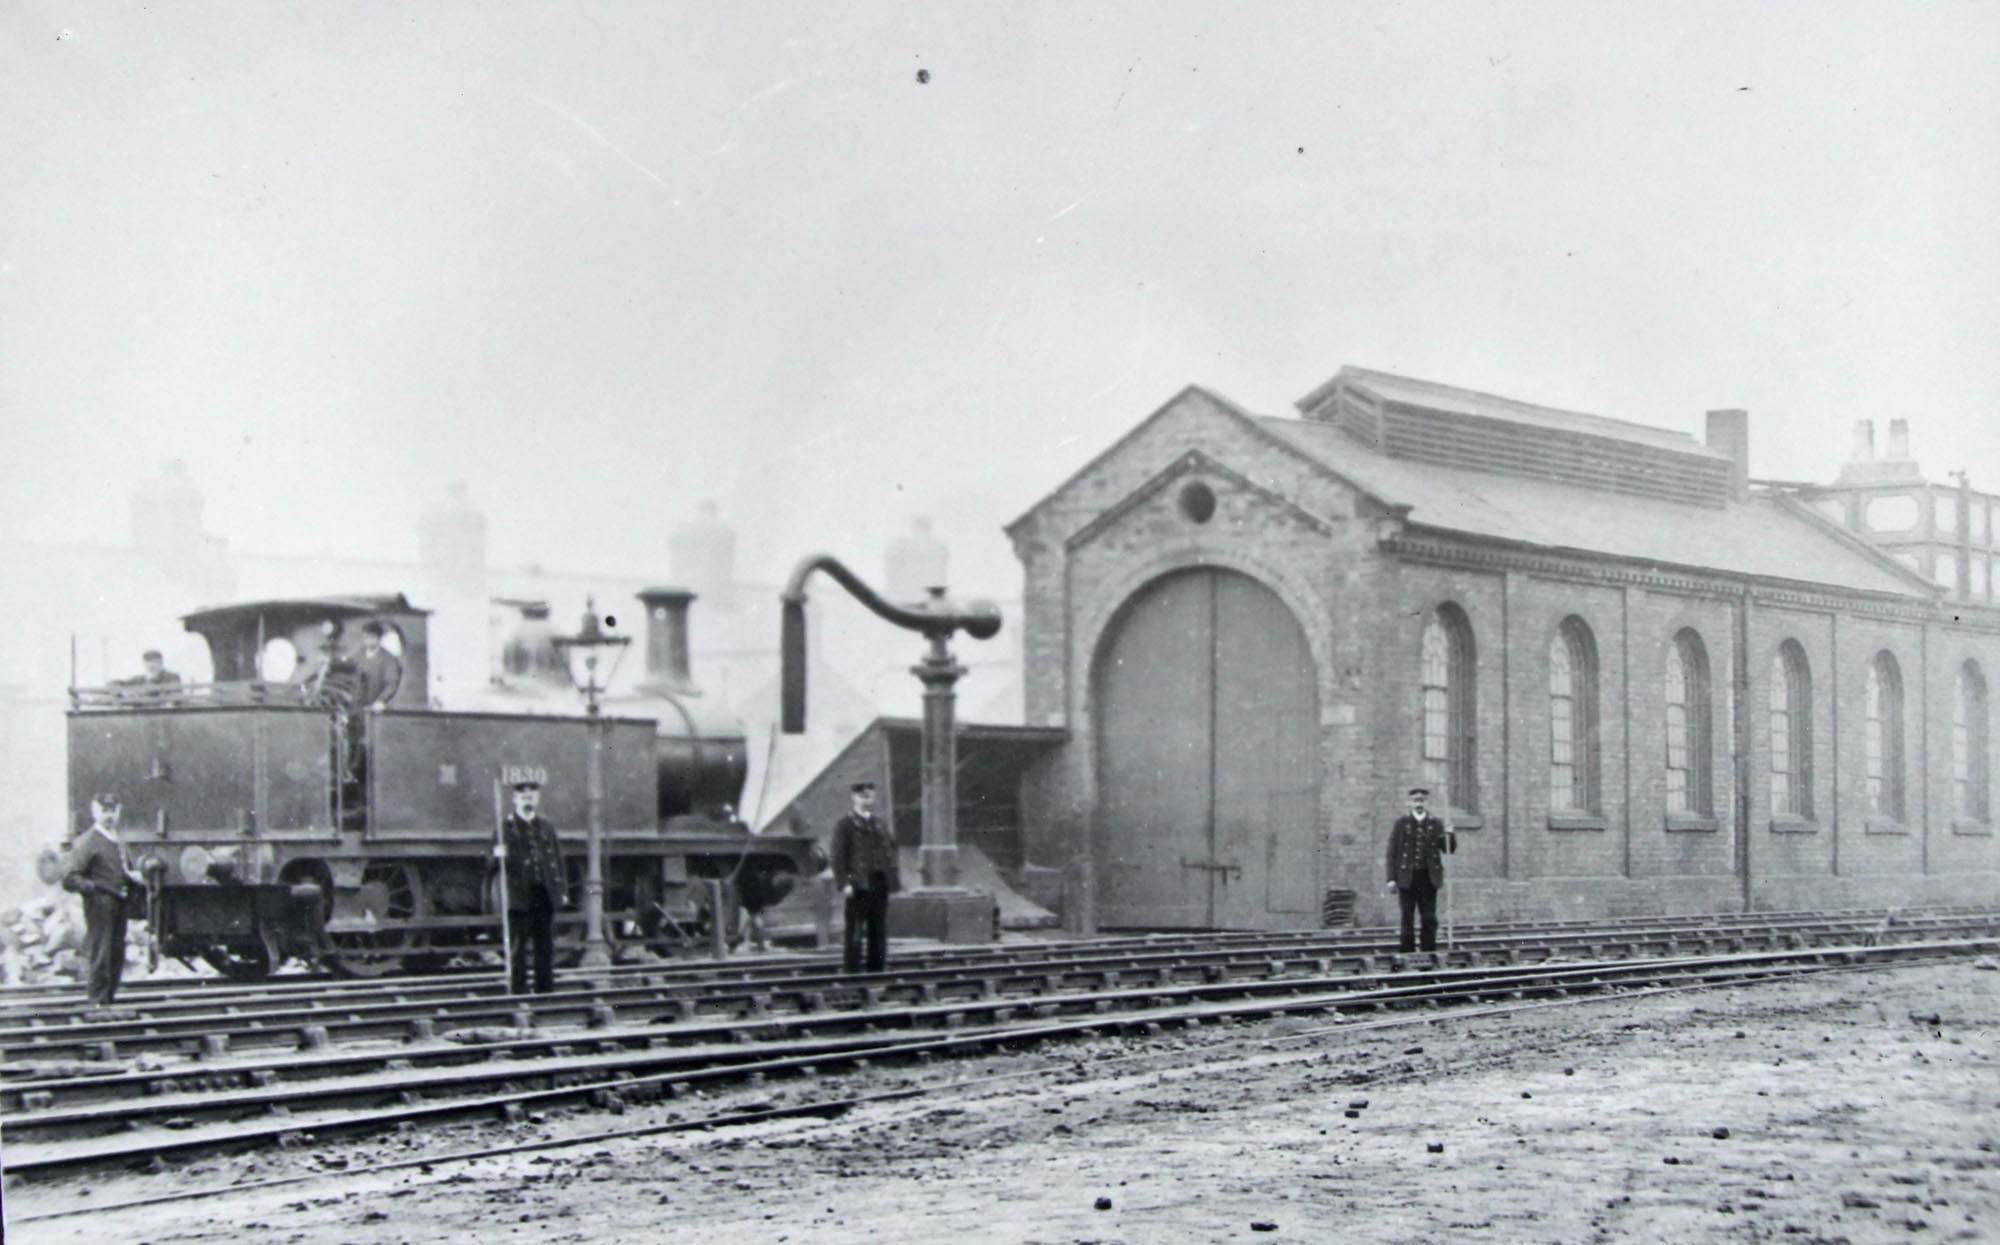 West Bridge Station engine shed, 1907 - Leicestershire Record Office